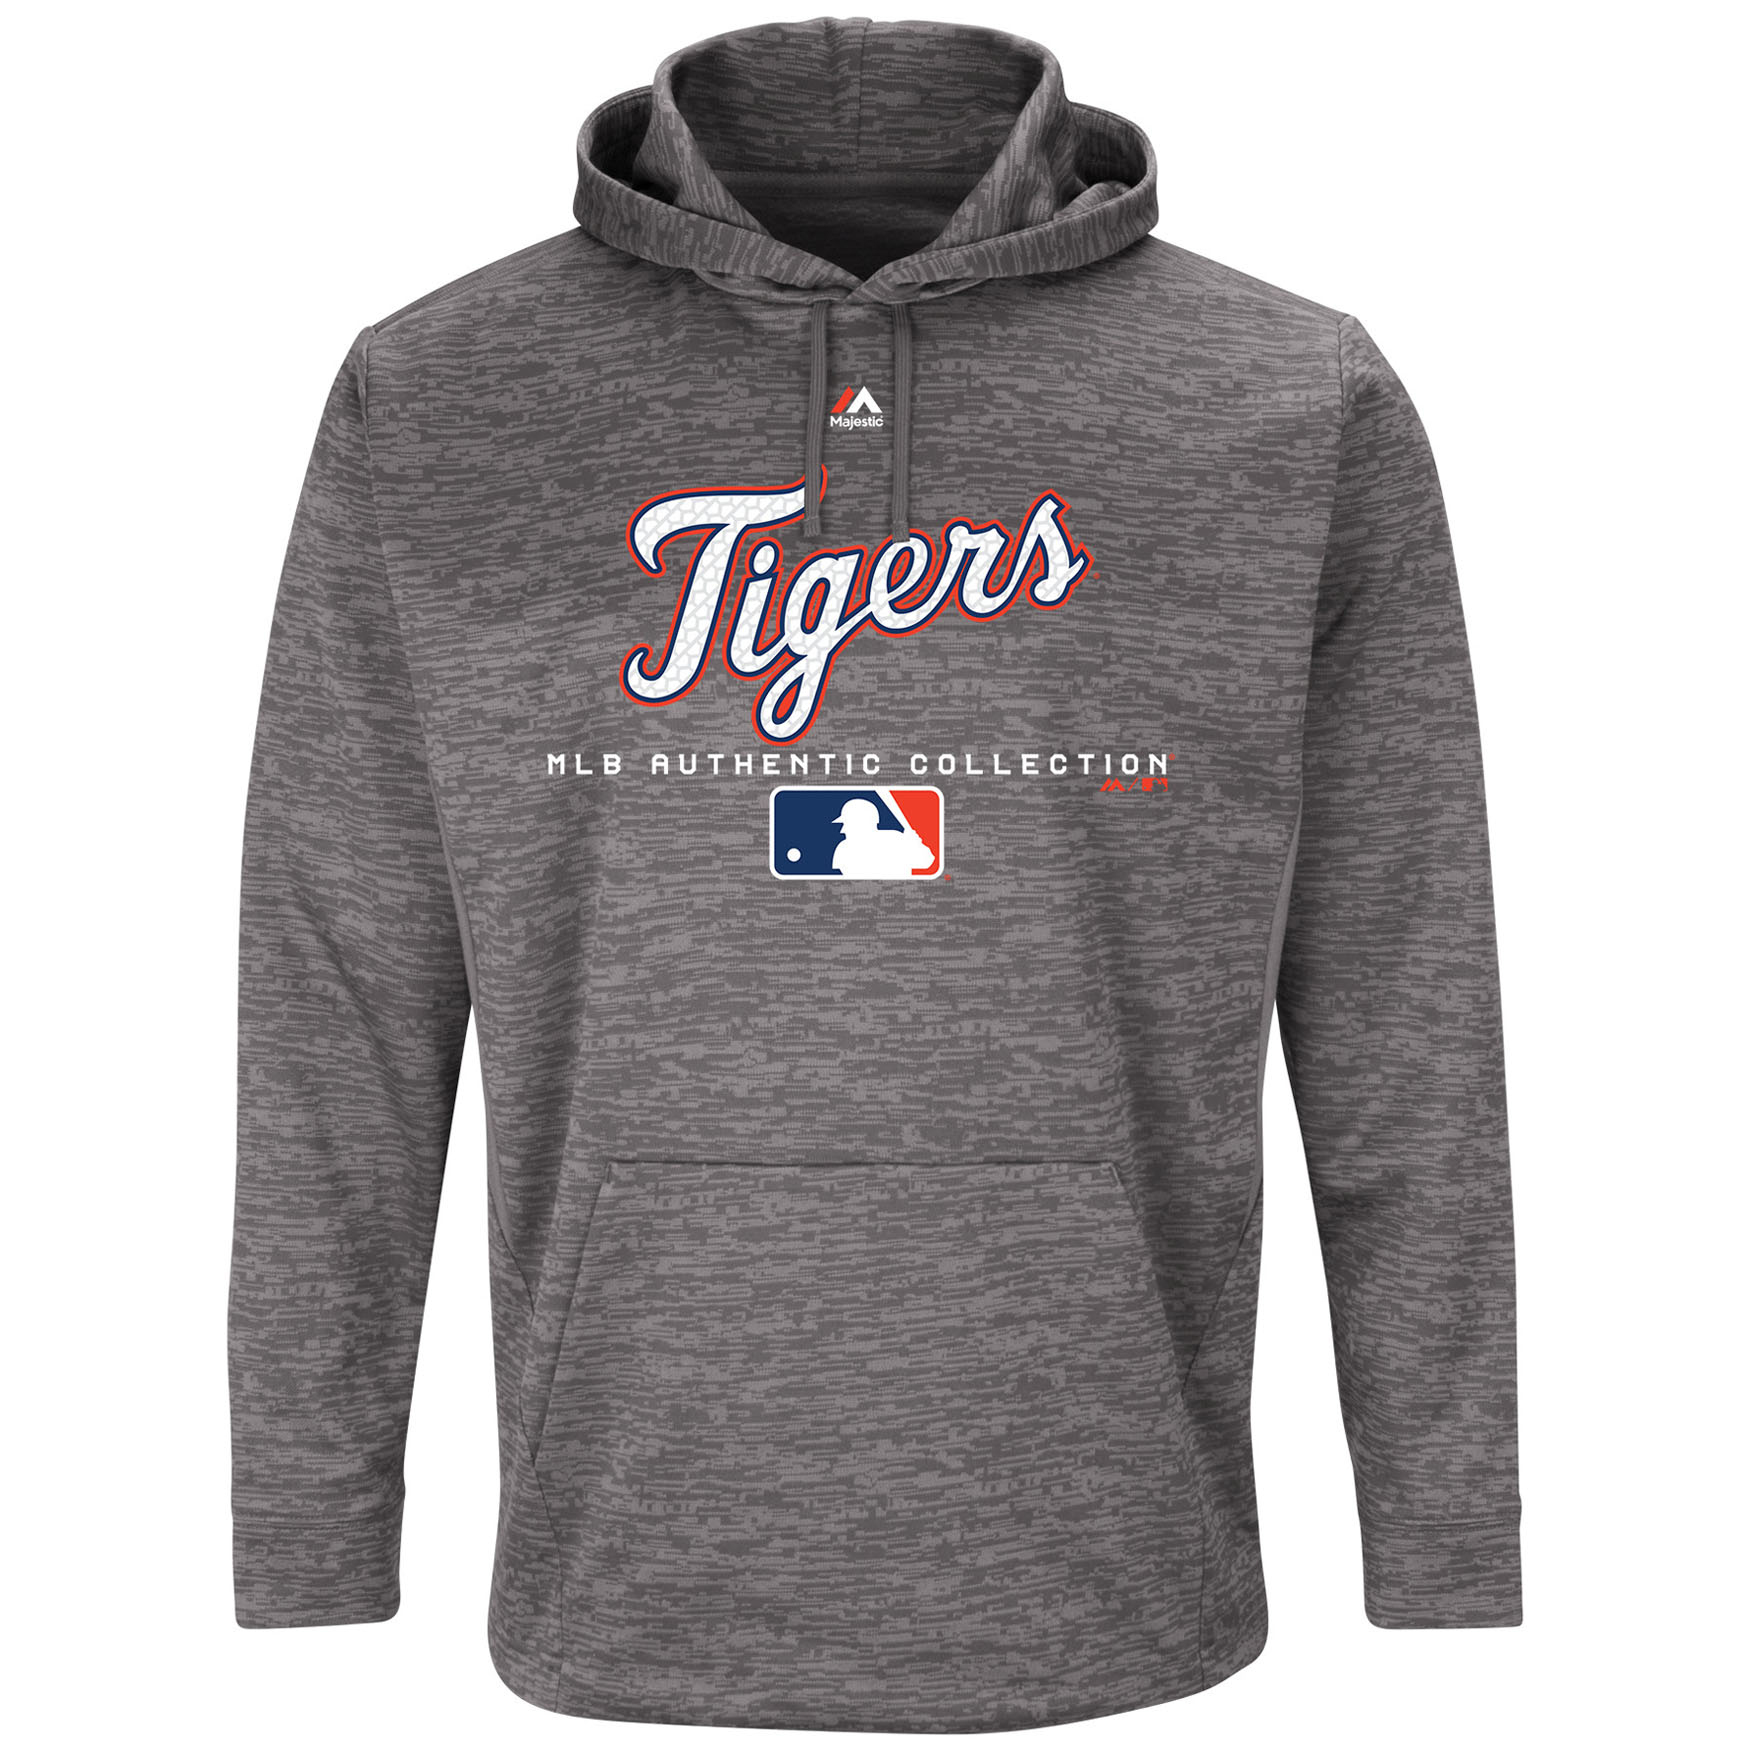 Detroit Tigers Majestic Authentic Collection Team Drive Ultra-Streak Fleece Pullover Hoodie - Graphite